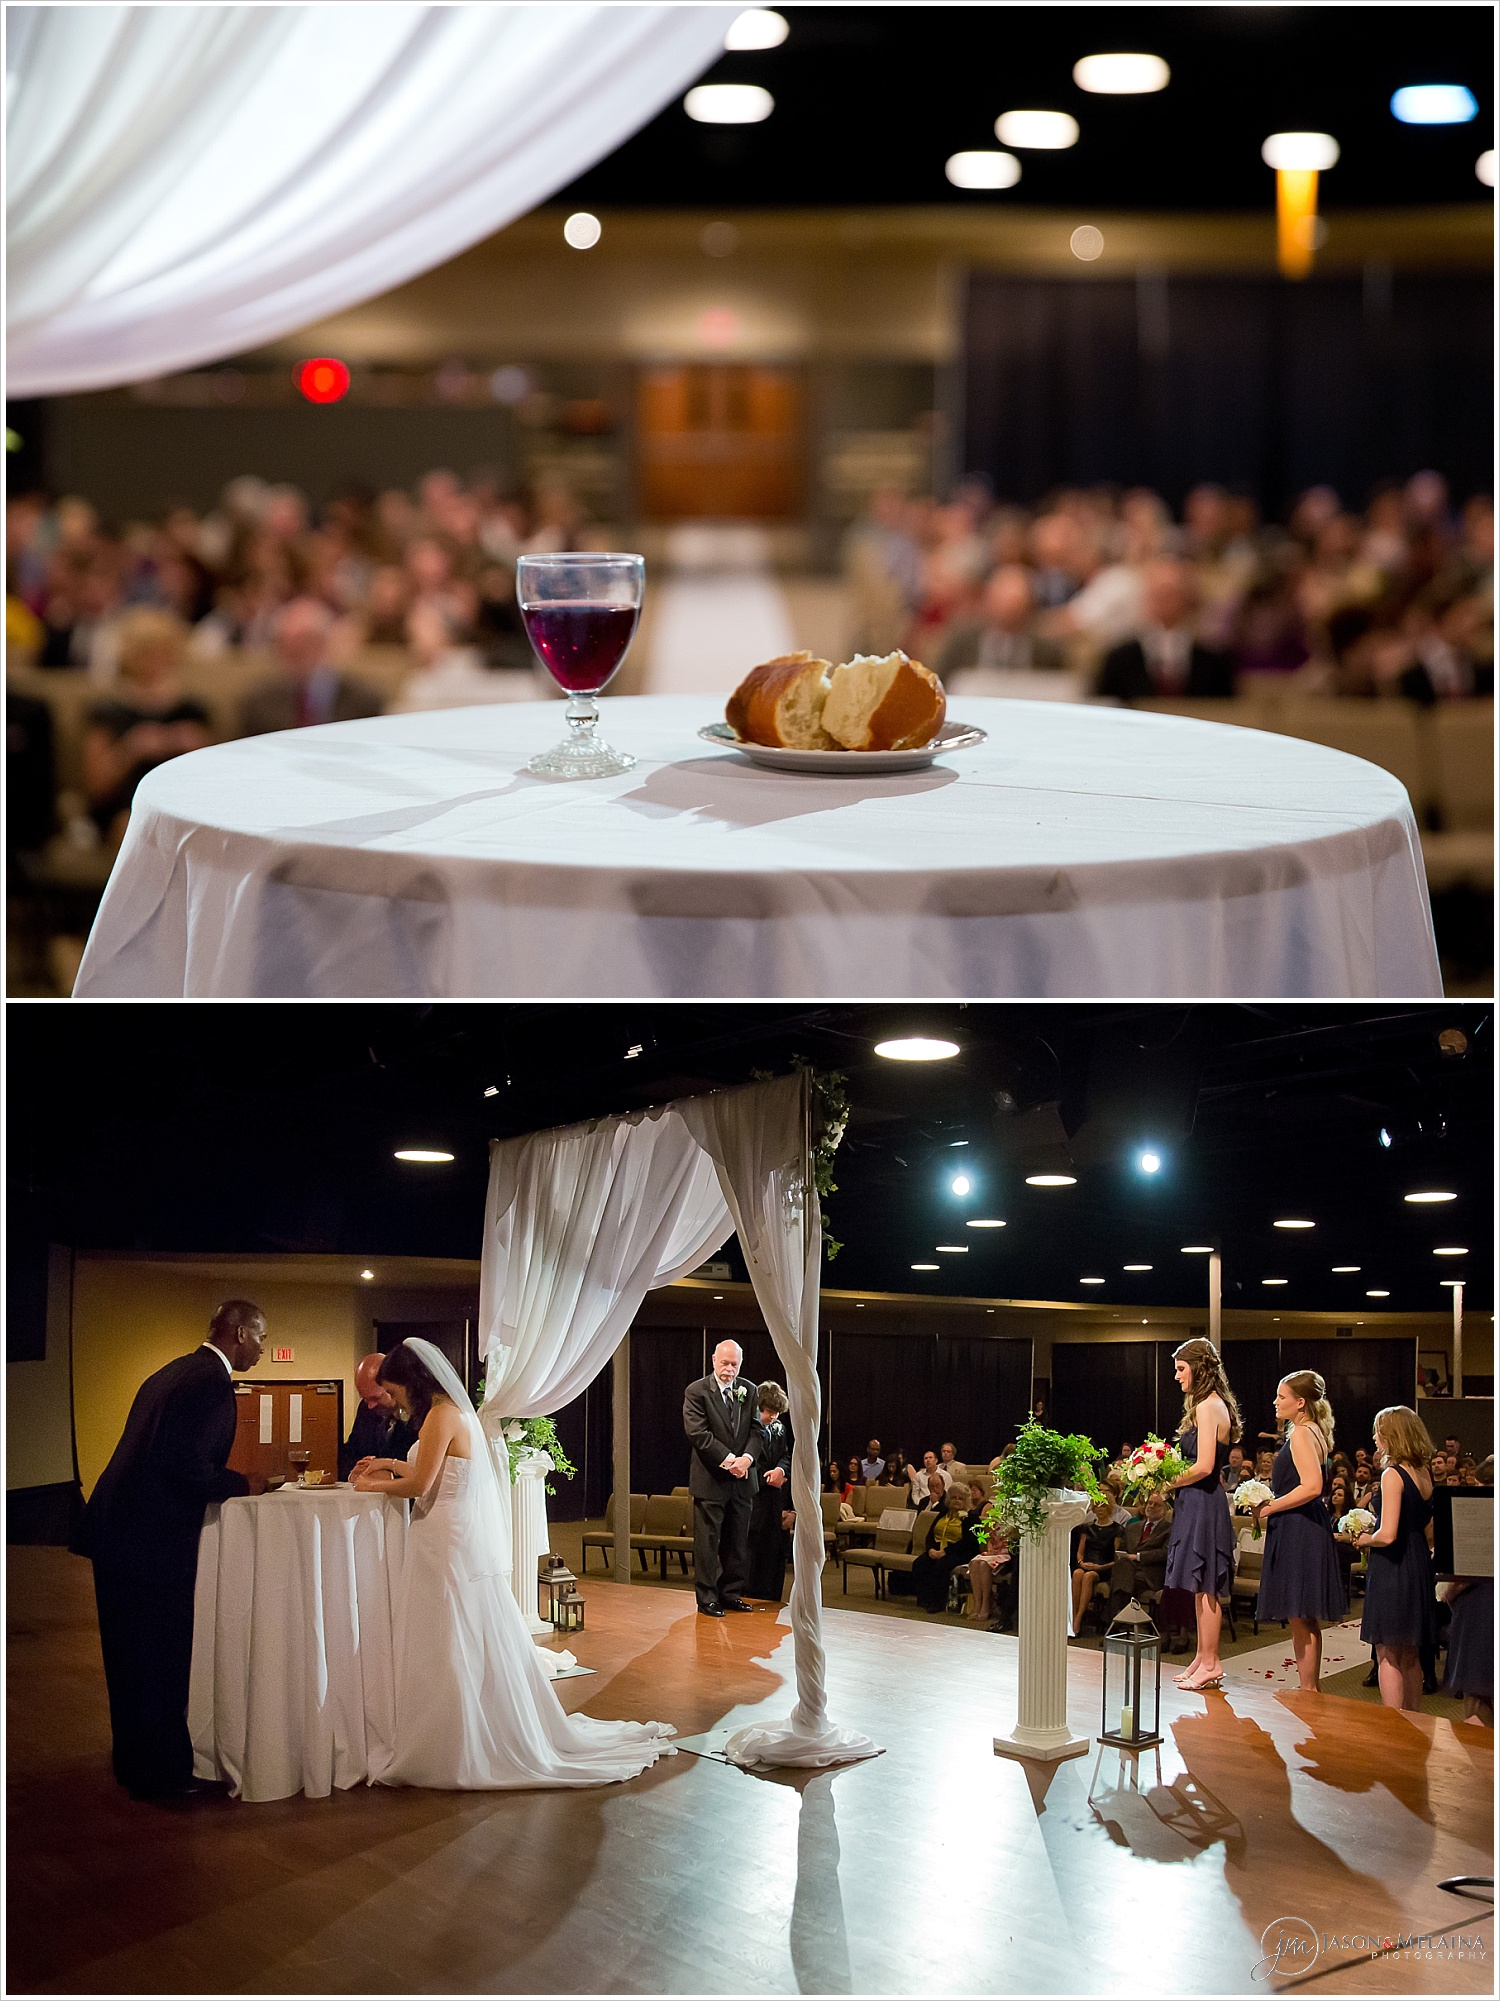 Bride and groom take communion at their wedding ceremony at Antioch Community Church in Waco, Texas